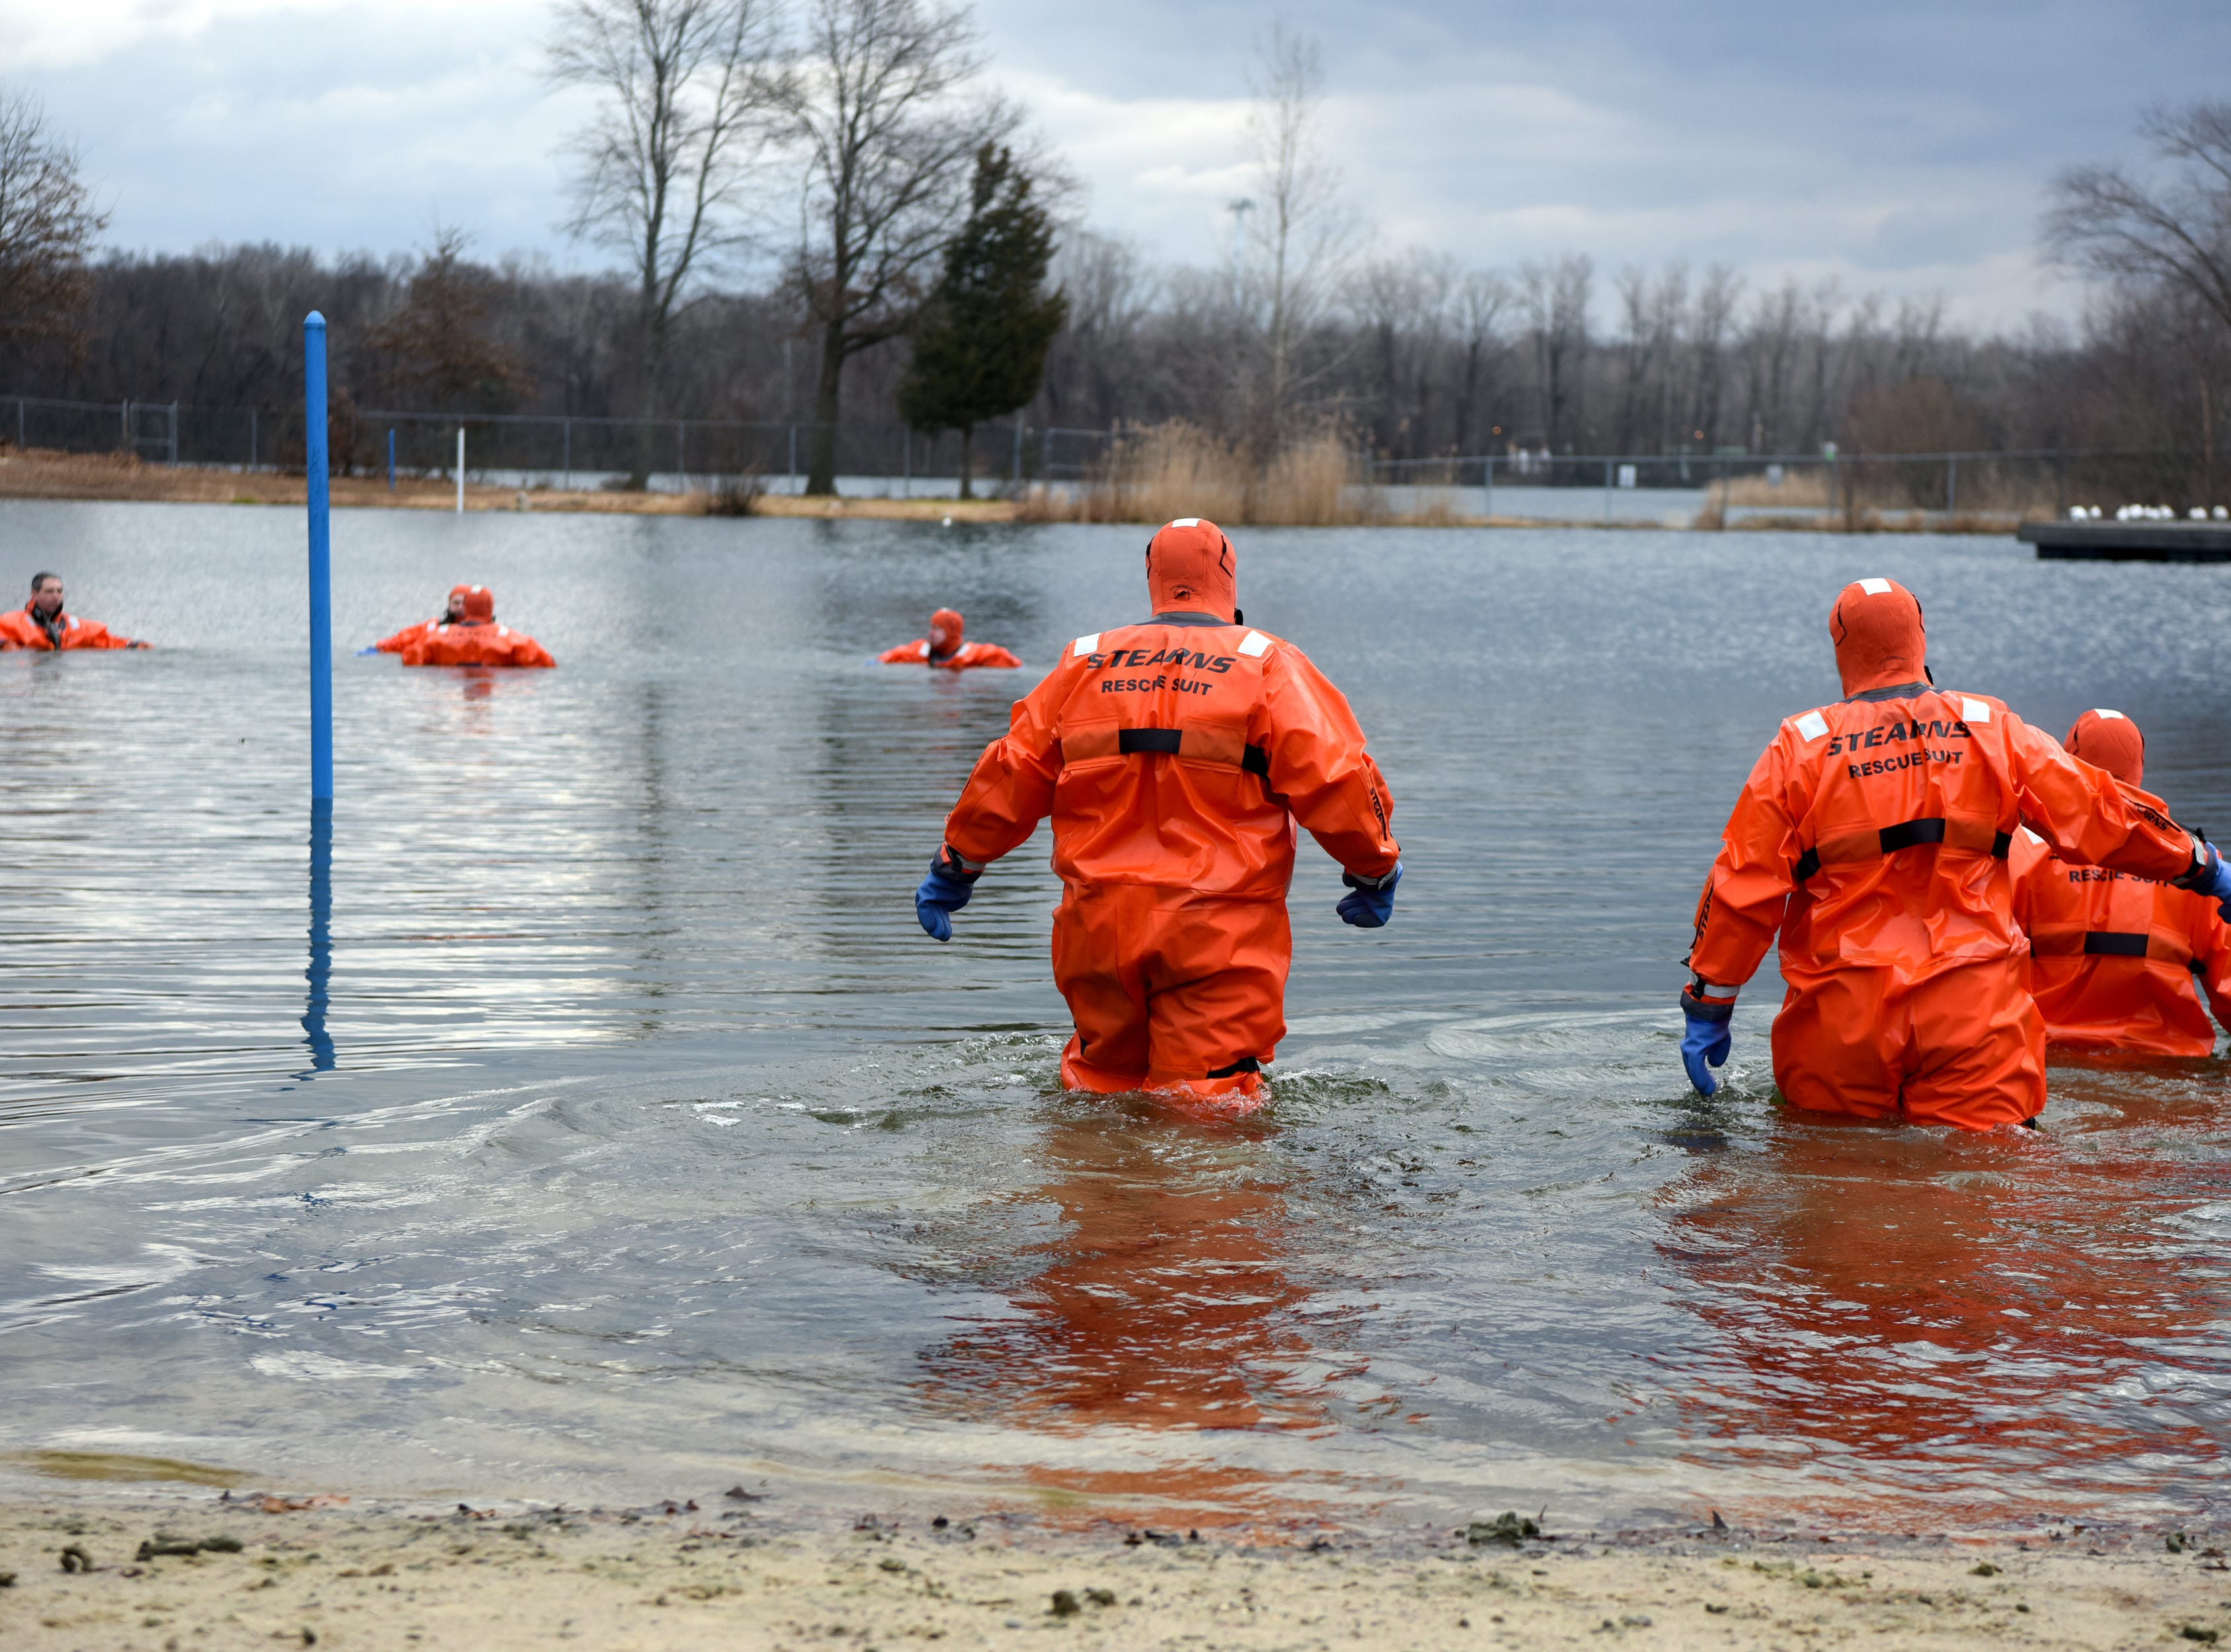 The 4th annual Pequannock Polar Plunge was held at the lake in Pequannock Valley Park on Sunday, January 6, 2019. Members of Pequannock Fire Department Engine Company One enter the water as a safety measure.